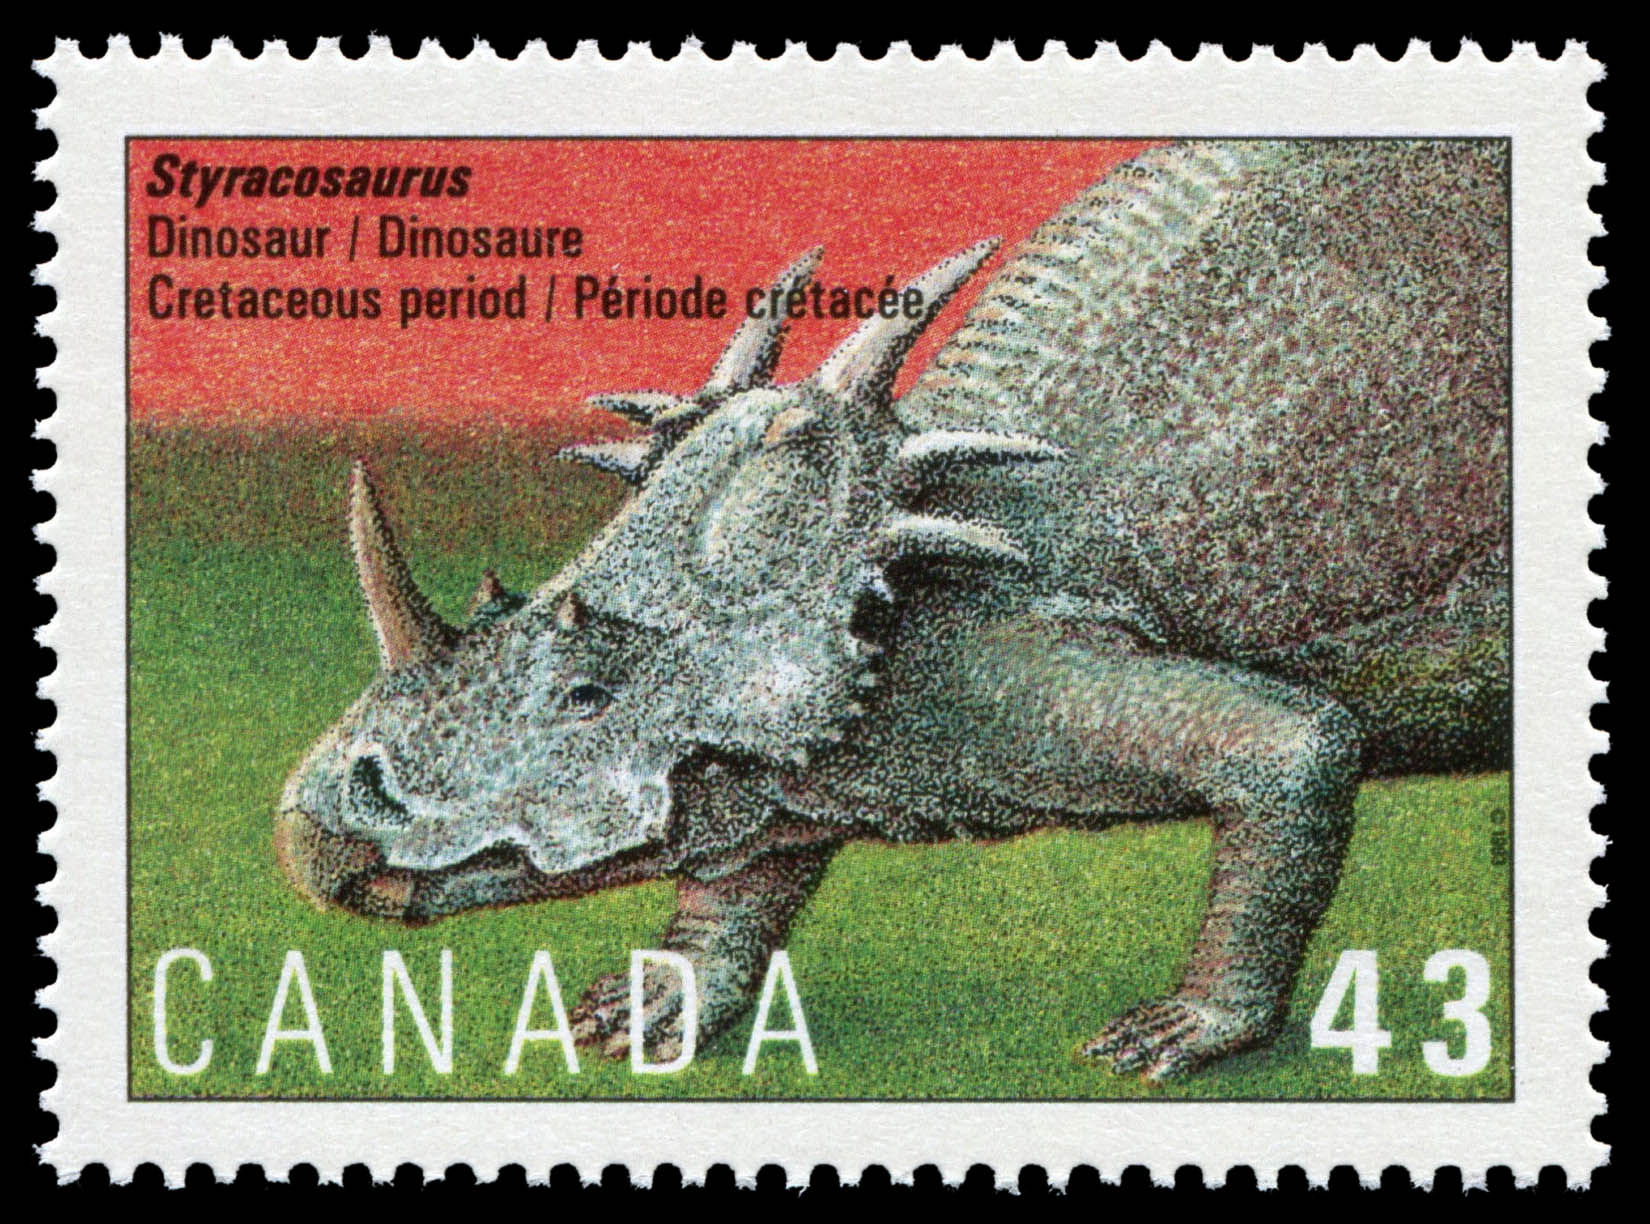 Styracosaurus, Dinosaur, Cretaceous Period Canada Postage Stamp | Prehistoric Life in Canada, The Age of Dinosaurs